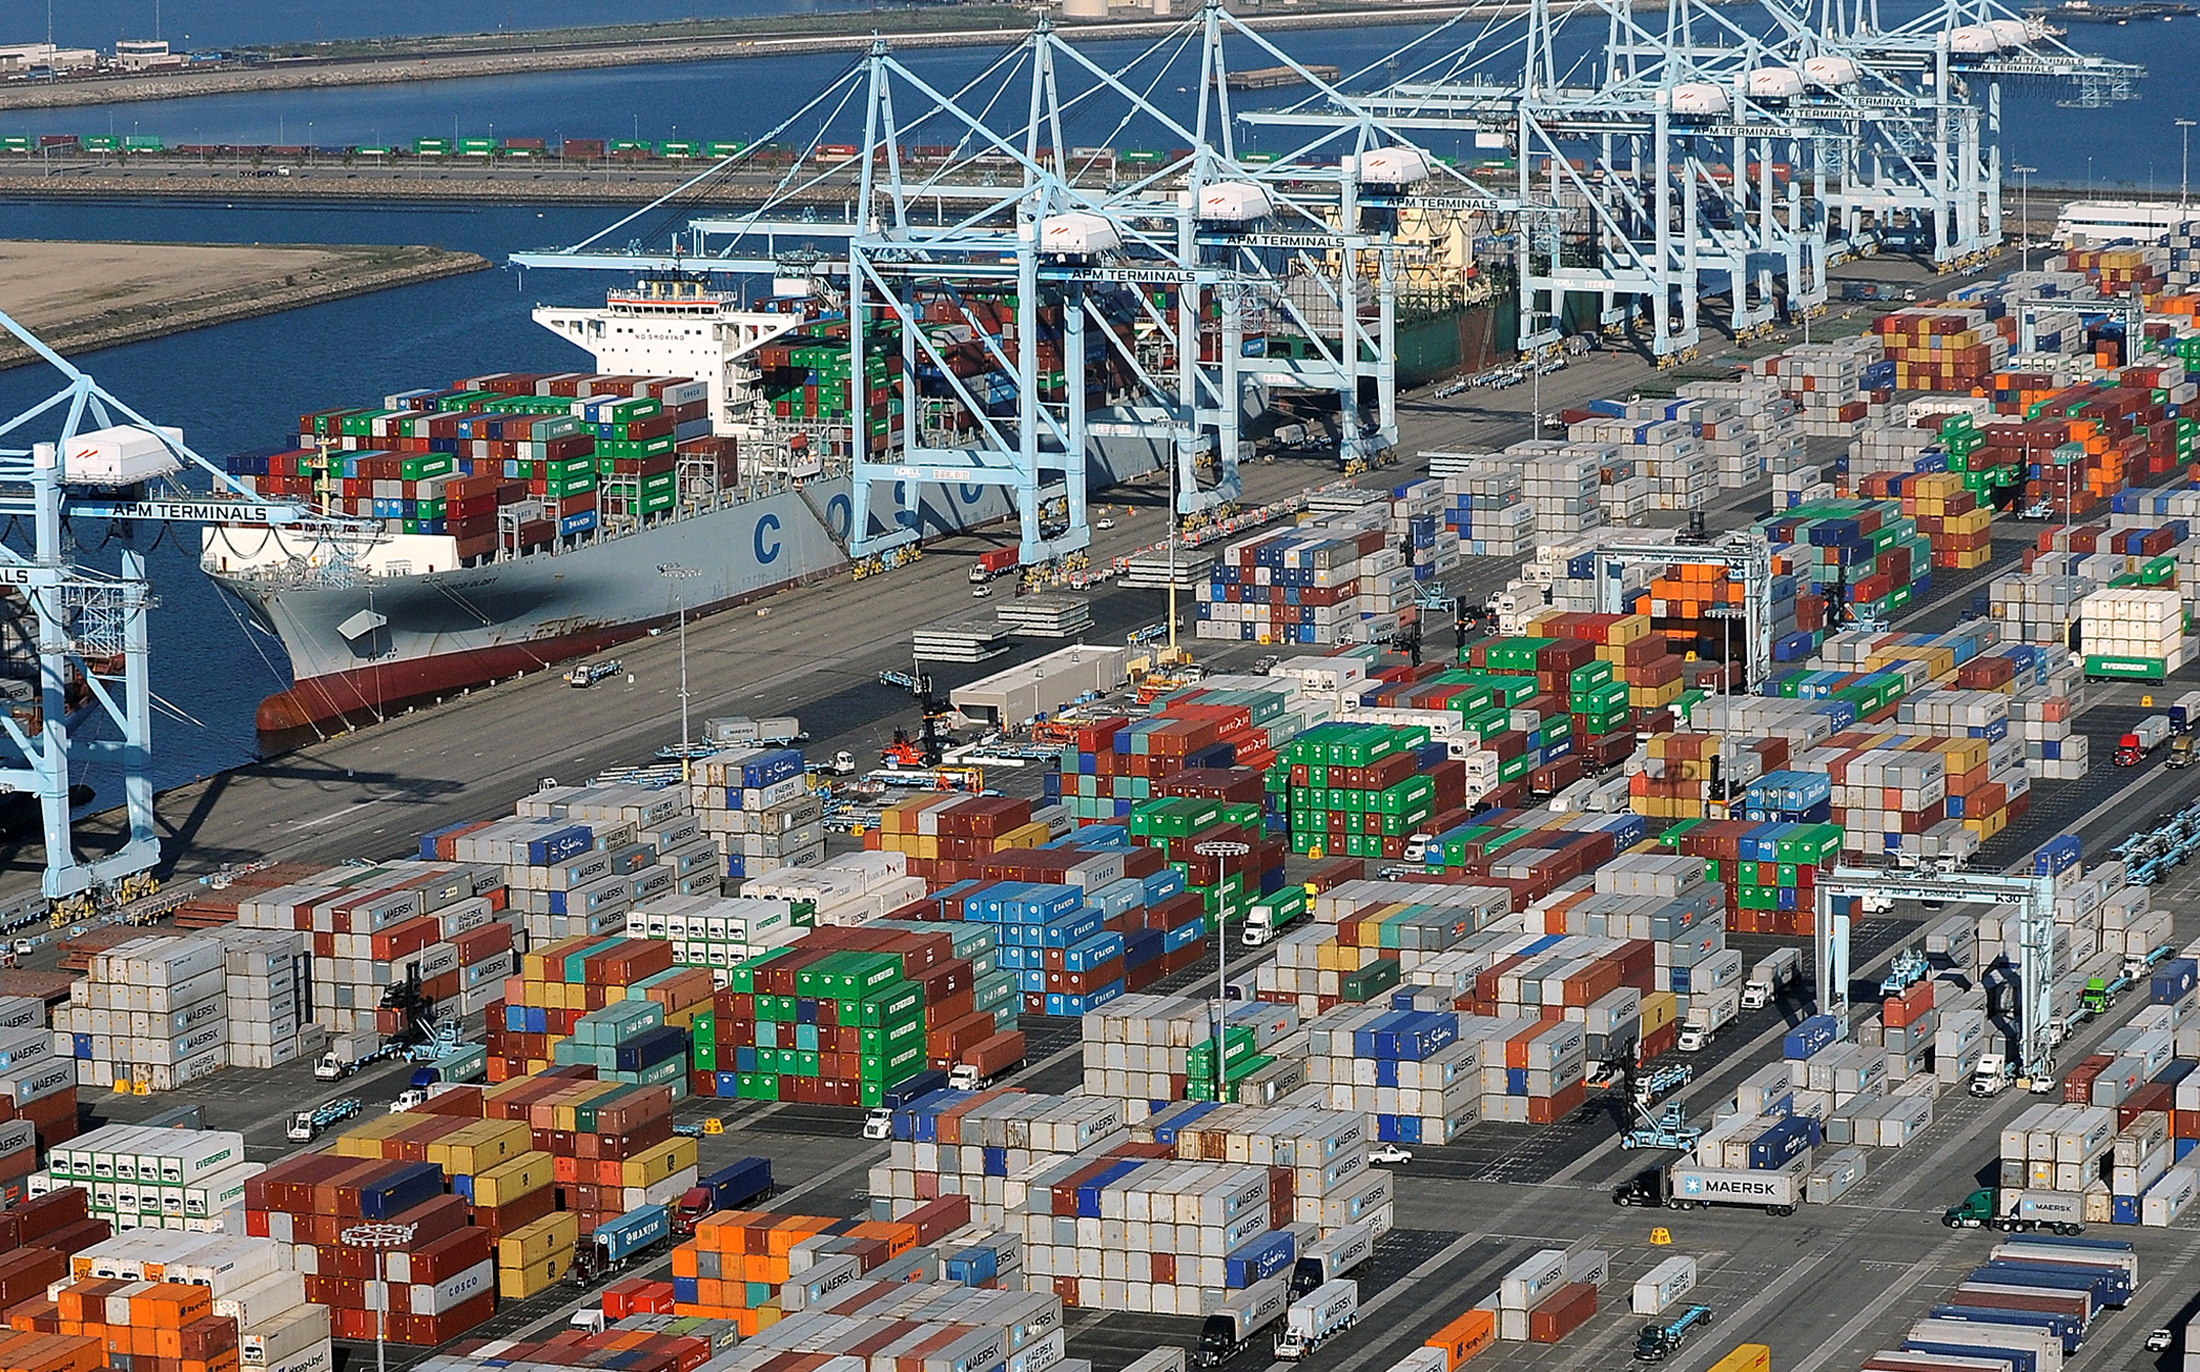 Shipping containers sit at the ports of Los Angeles and Long Beach, California in this aerial photo taken February 6, 2015.  REUTERS/Bob Riha, Jr./File Photo